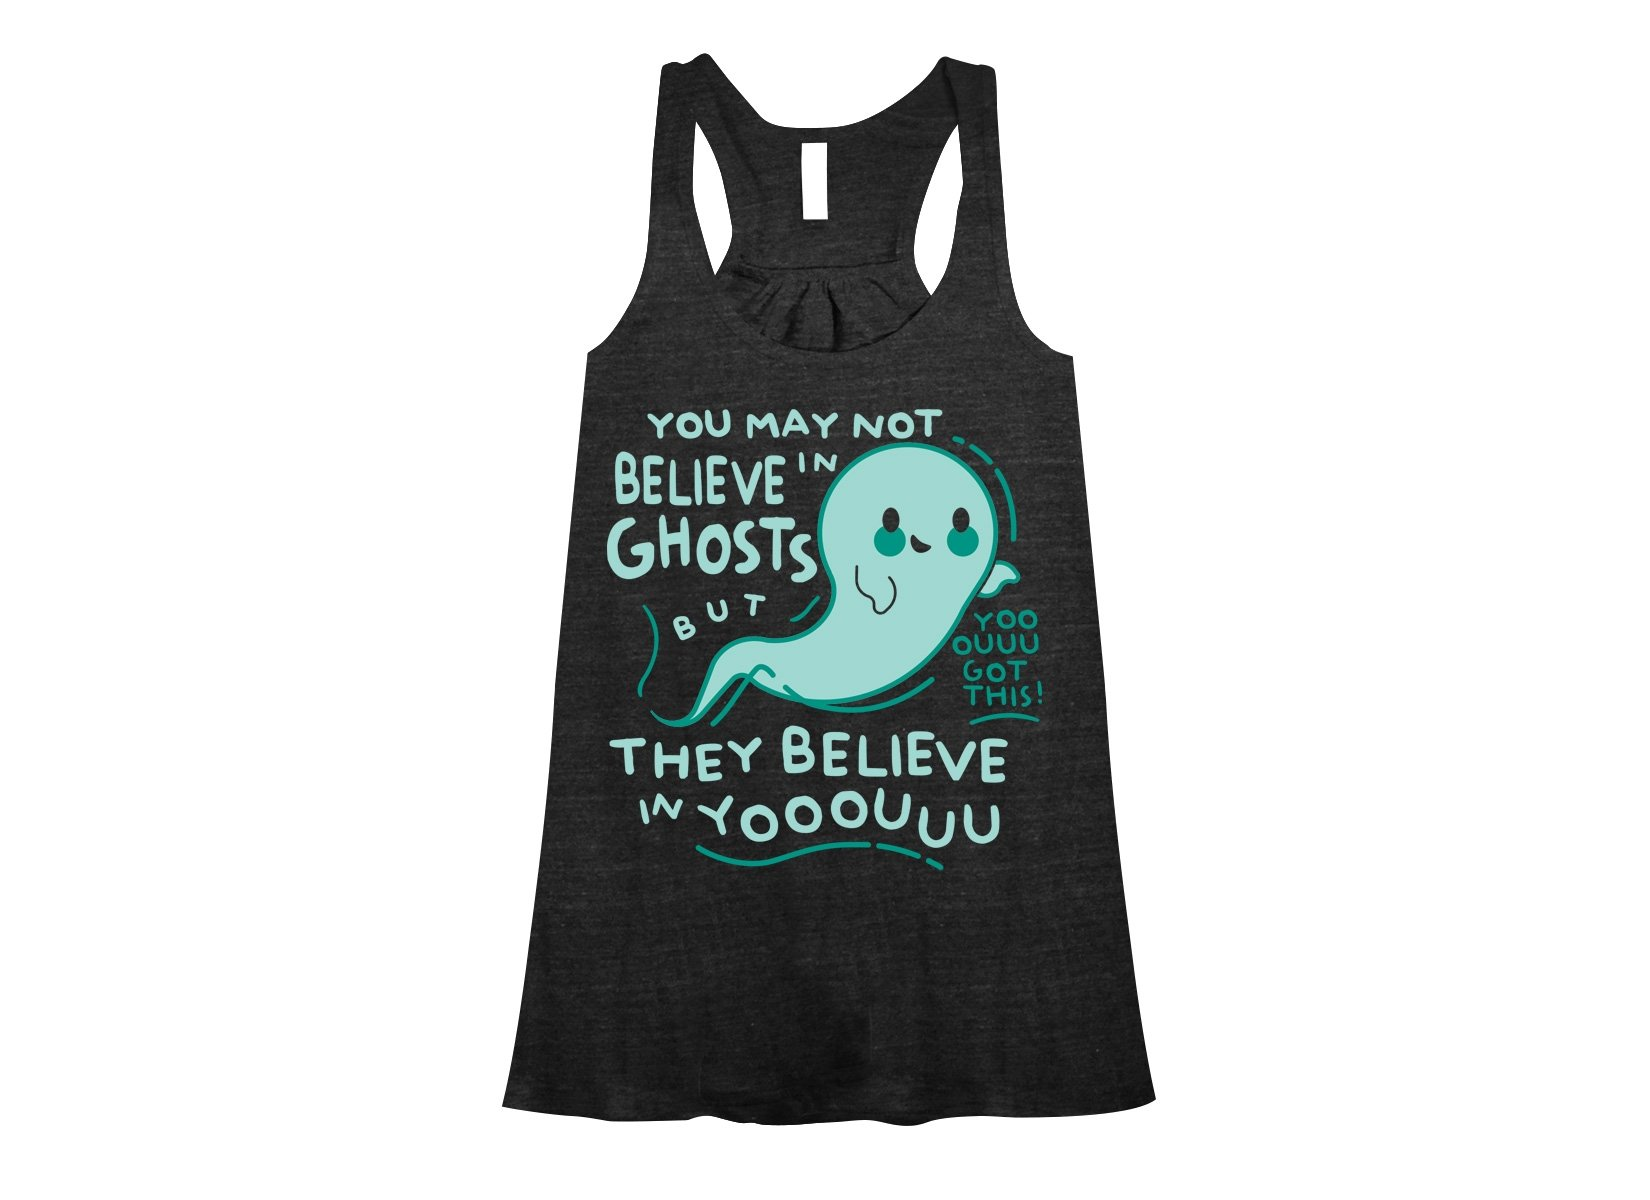 You May Not Believe In Ghosts on Womens Tanks T-Shirt